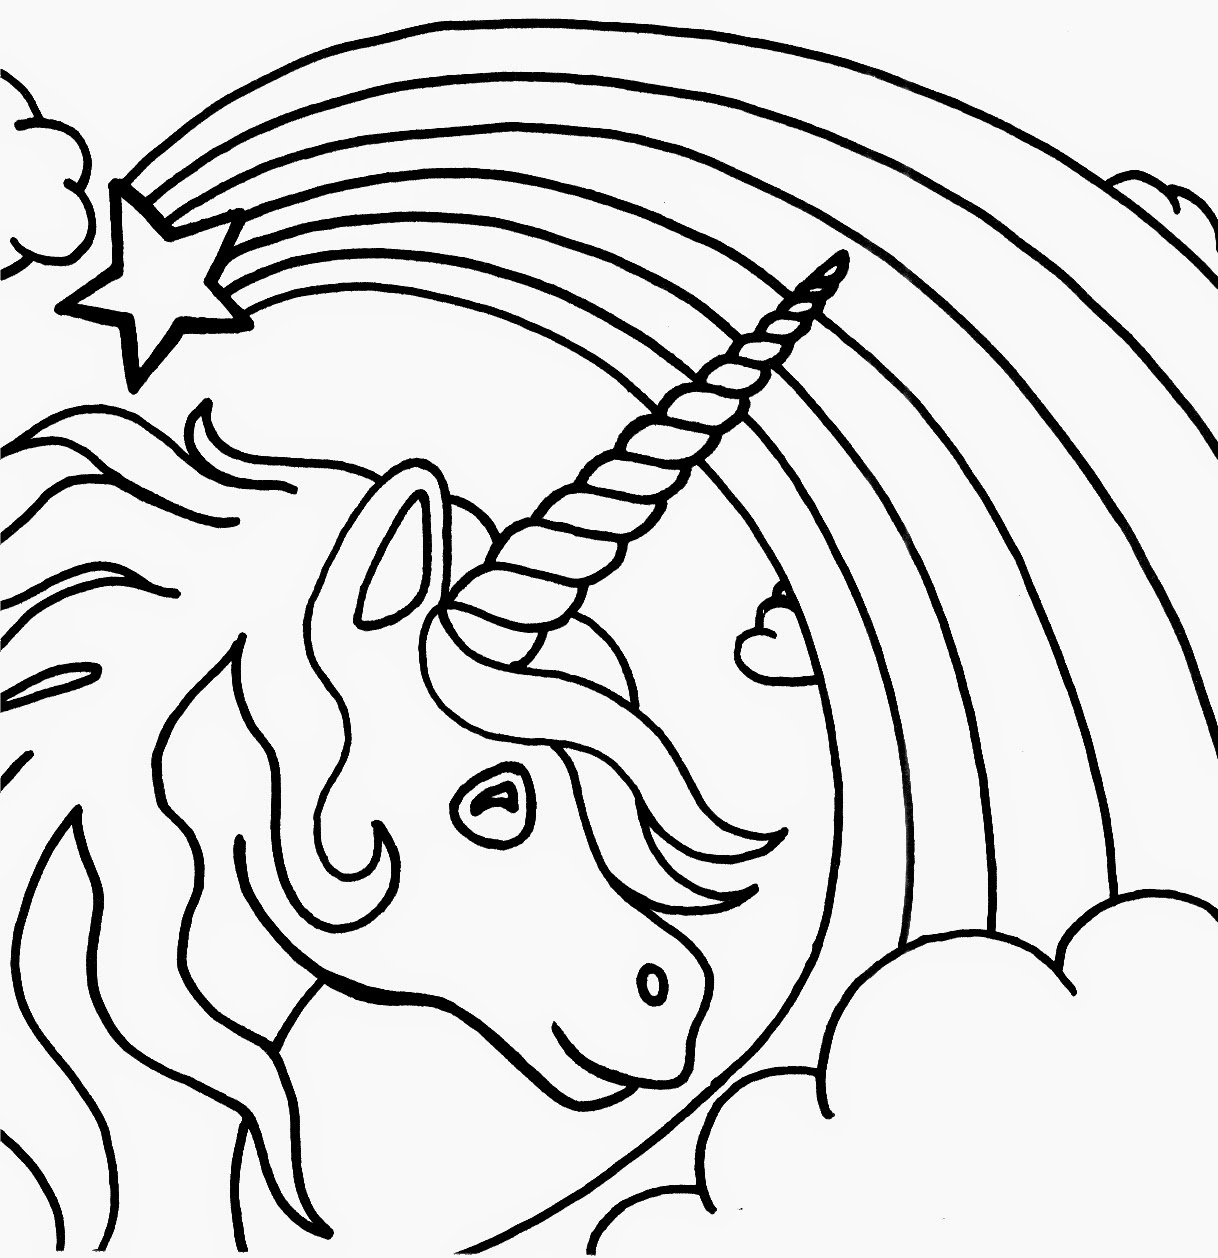 detailed unicorn coloring pages - coloring pages unicorn coloring pages free and printable